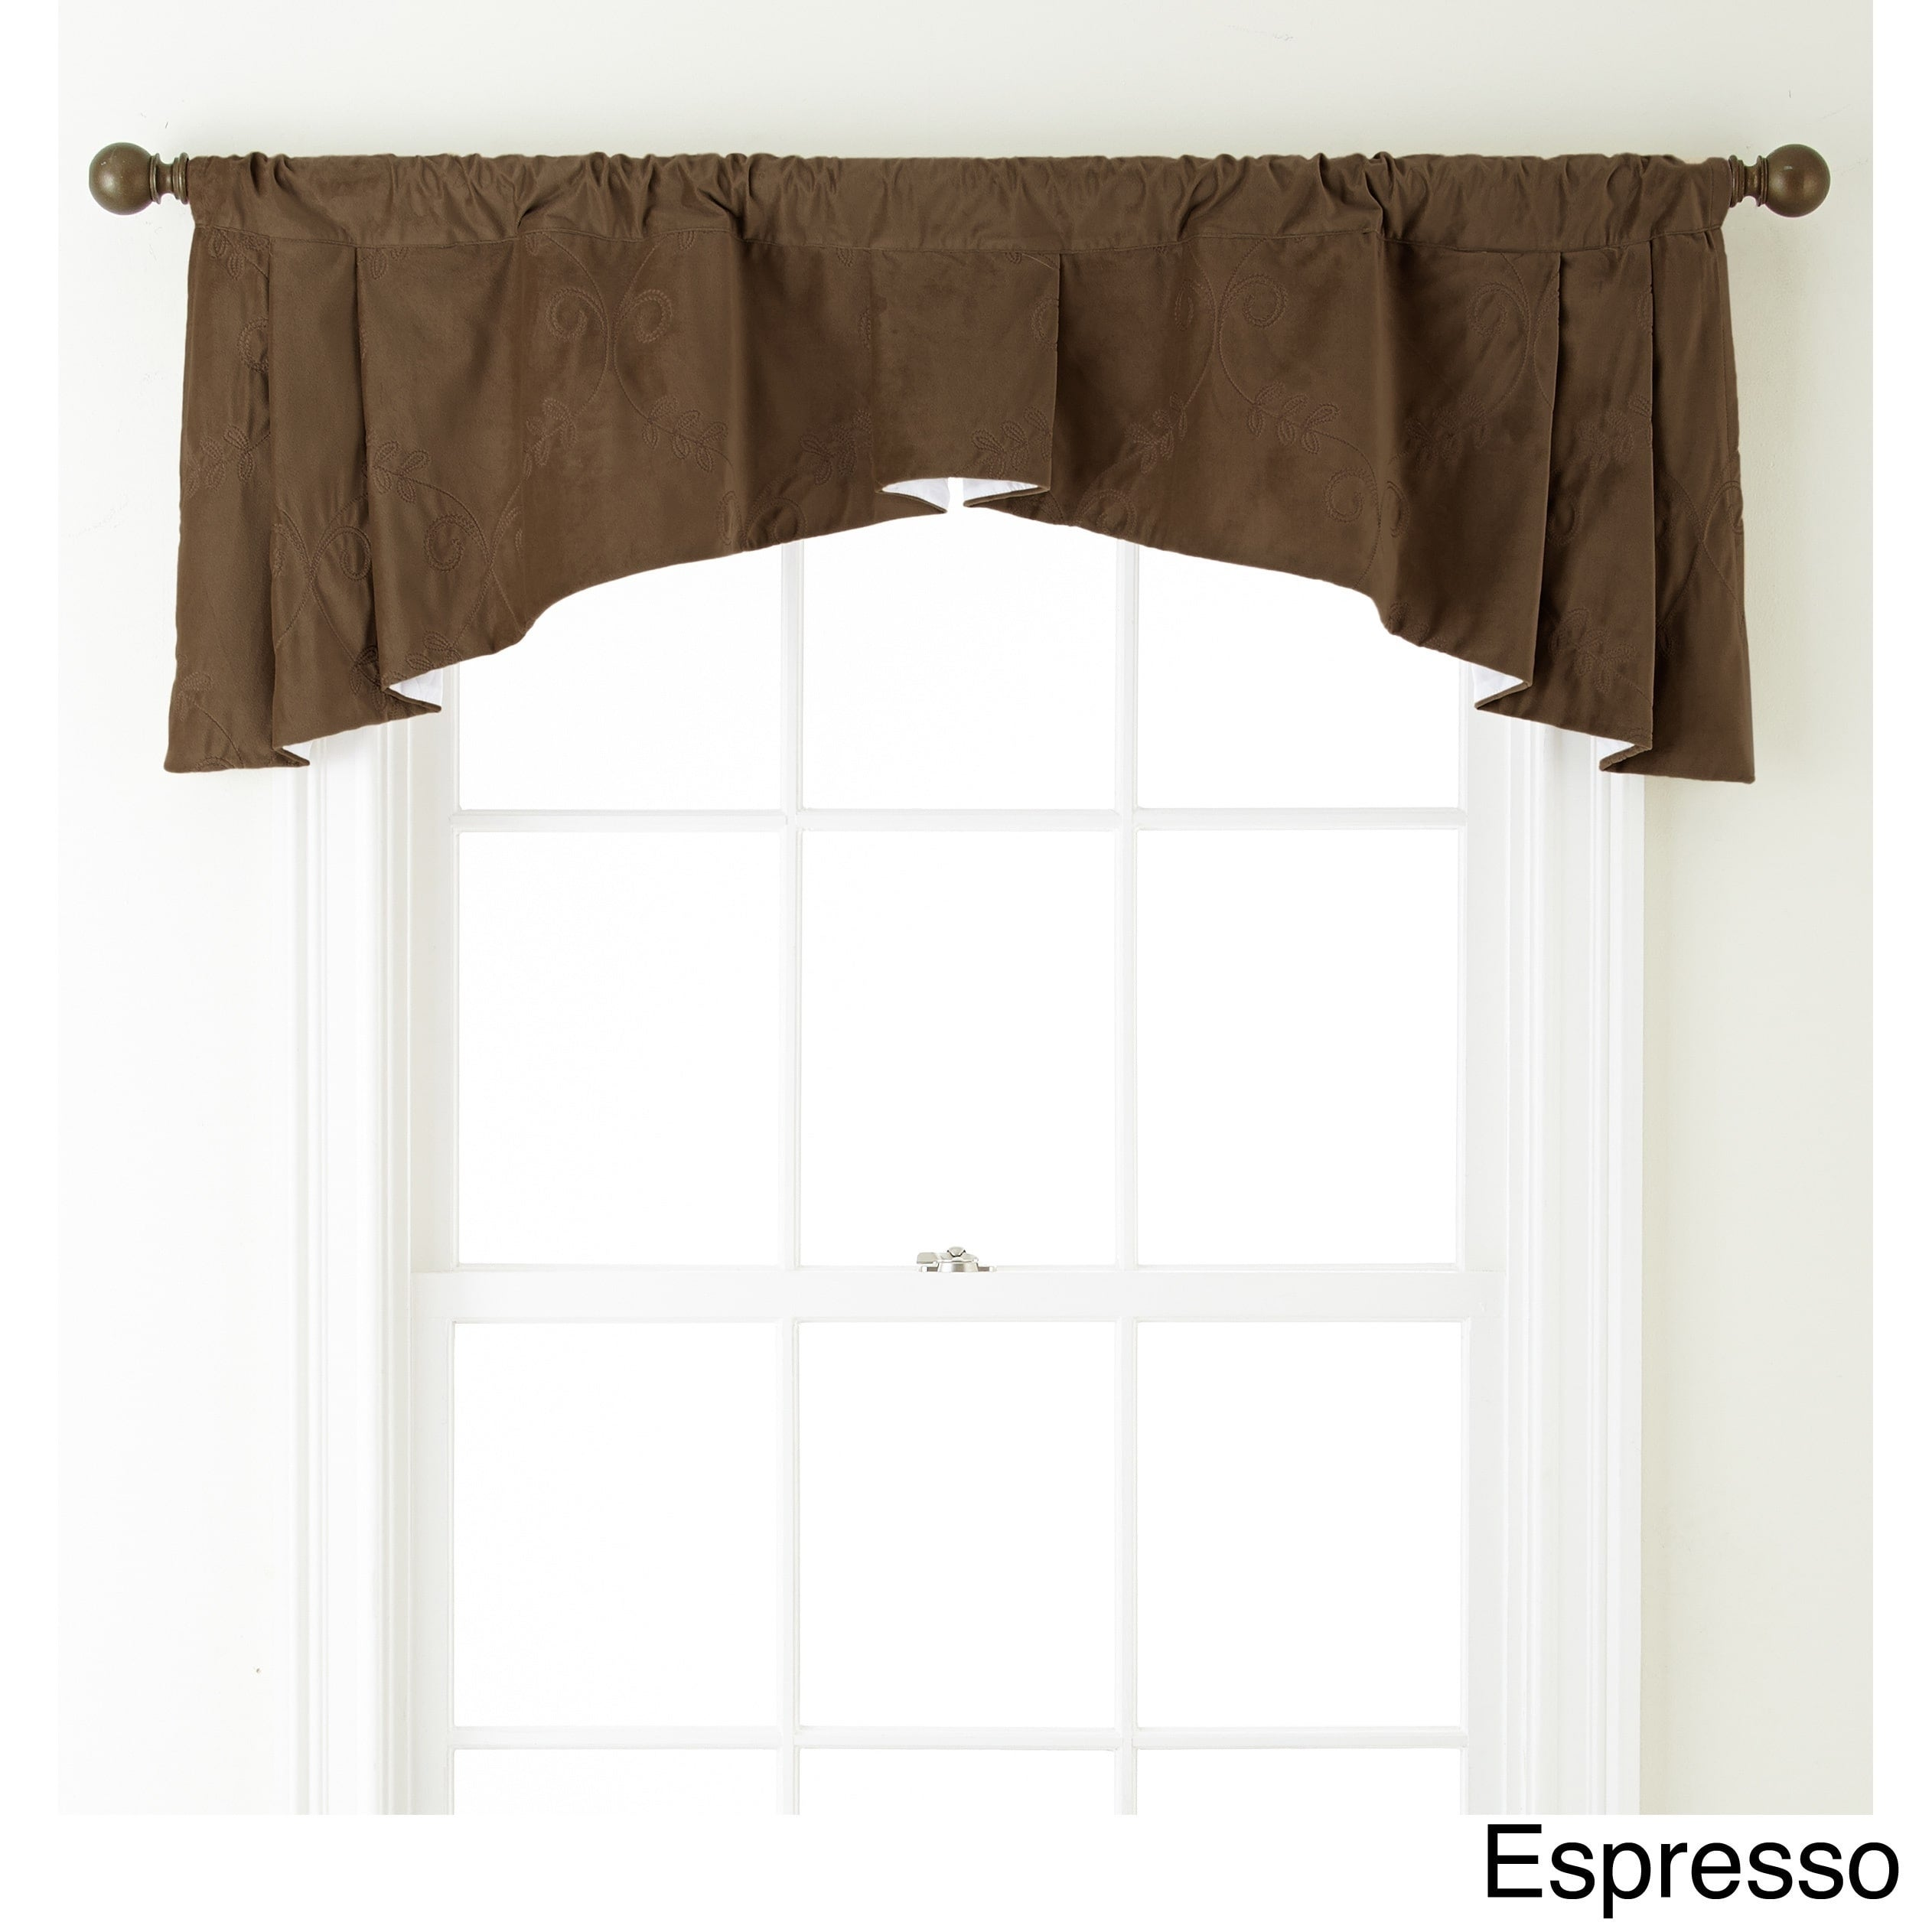 Grand Avenue Remedy 54 X 20 Inch Embroidered Curtain Valance 54 X 20 Overstock 11189930